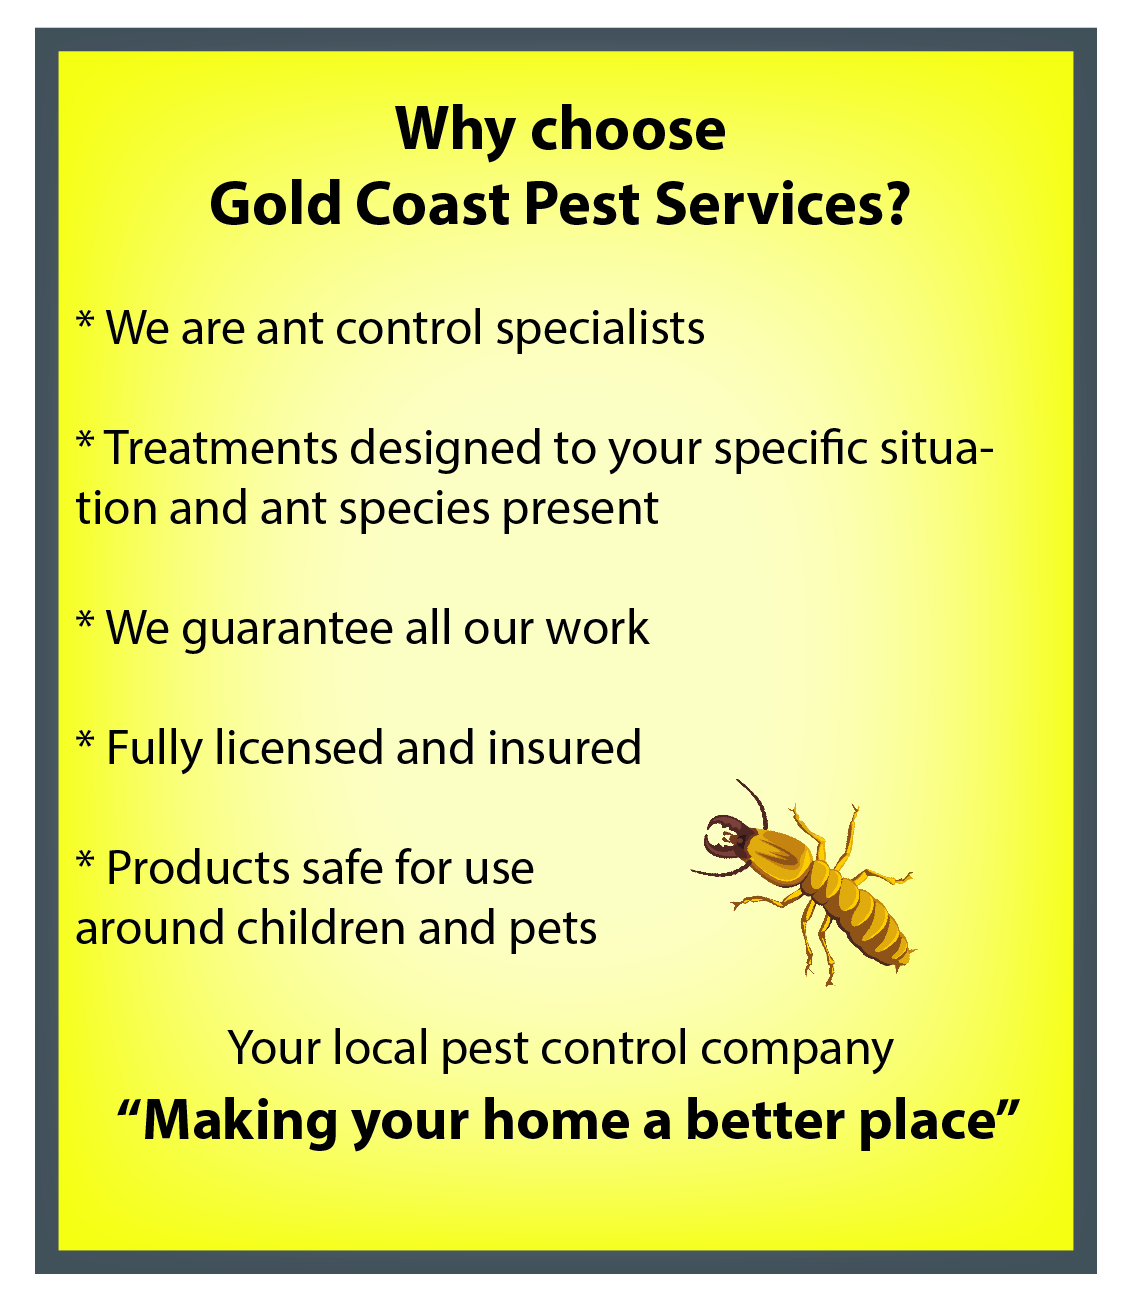 Ant control why choose Gold Coast Pest Services